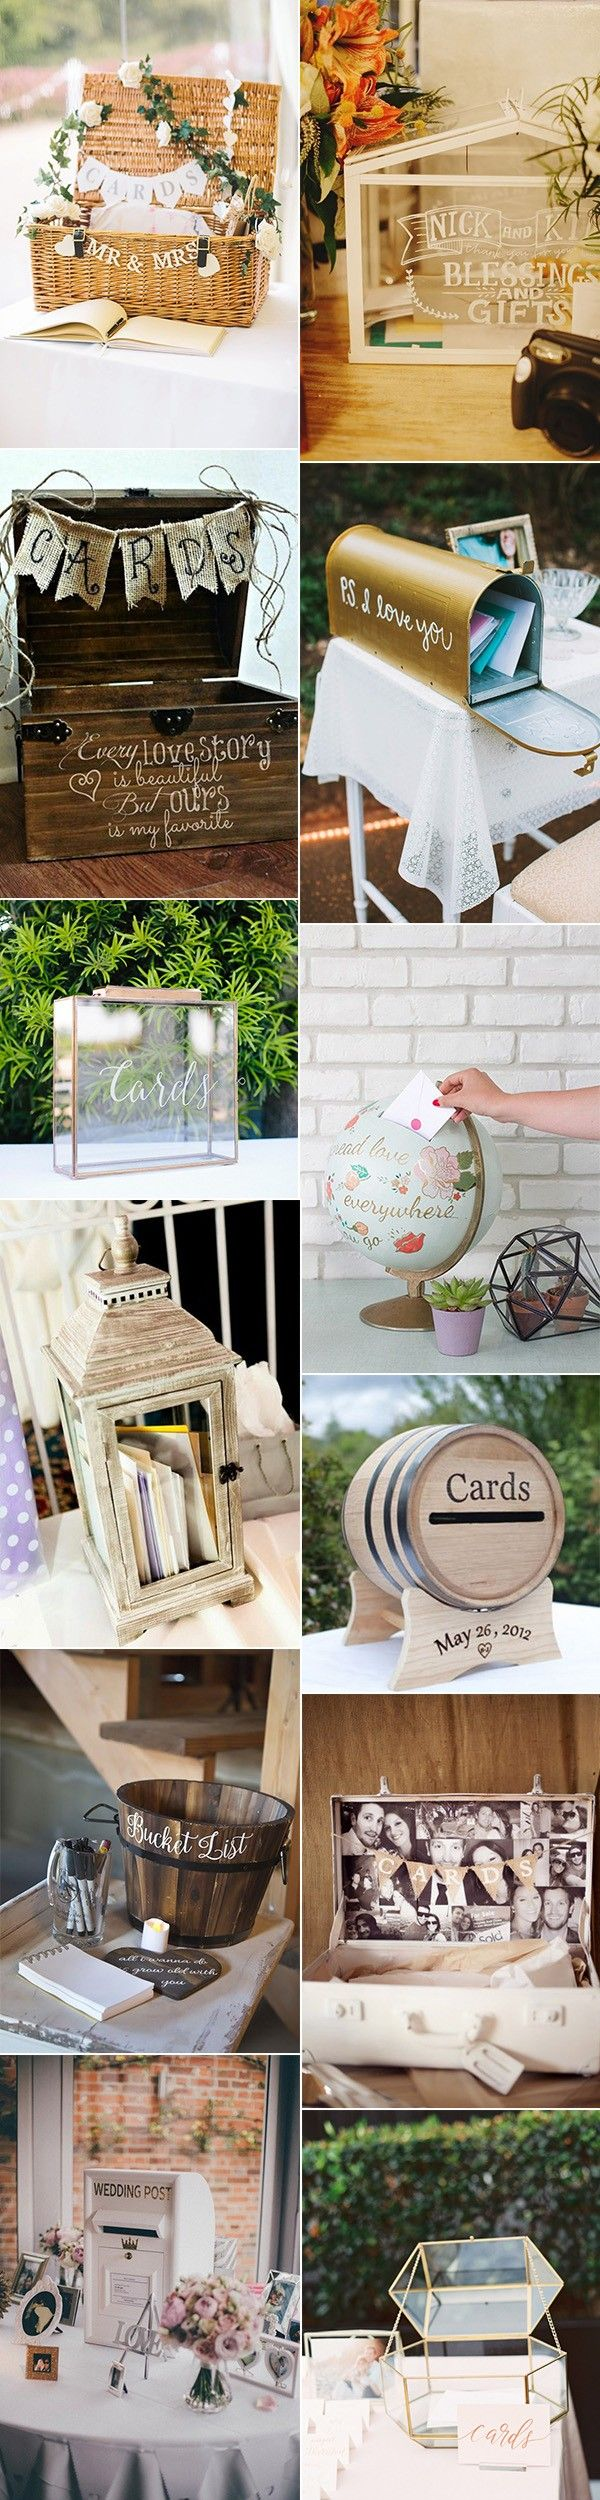 To add an extra detail into your decor you can turn the rather drab card box into something fabulous. It's a great way to put your DIY skills to use and to brighten up a welcoming table. Here are 20 ideas for you to get creative with your card boxes. (adsbygoogle =Read more